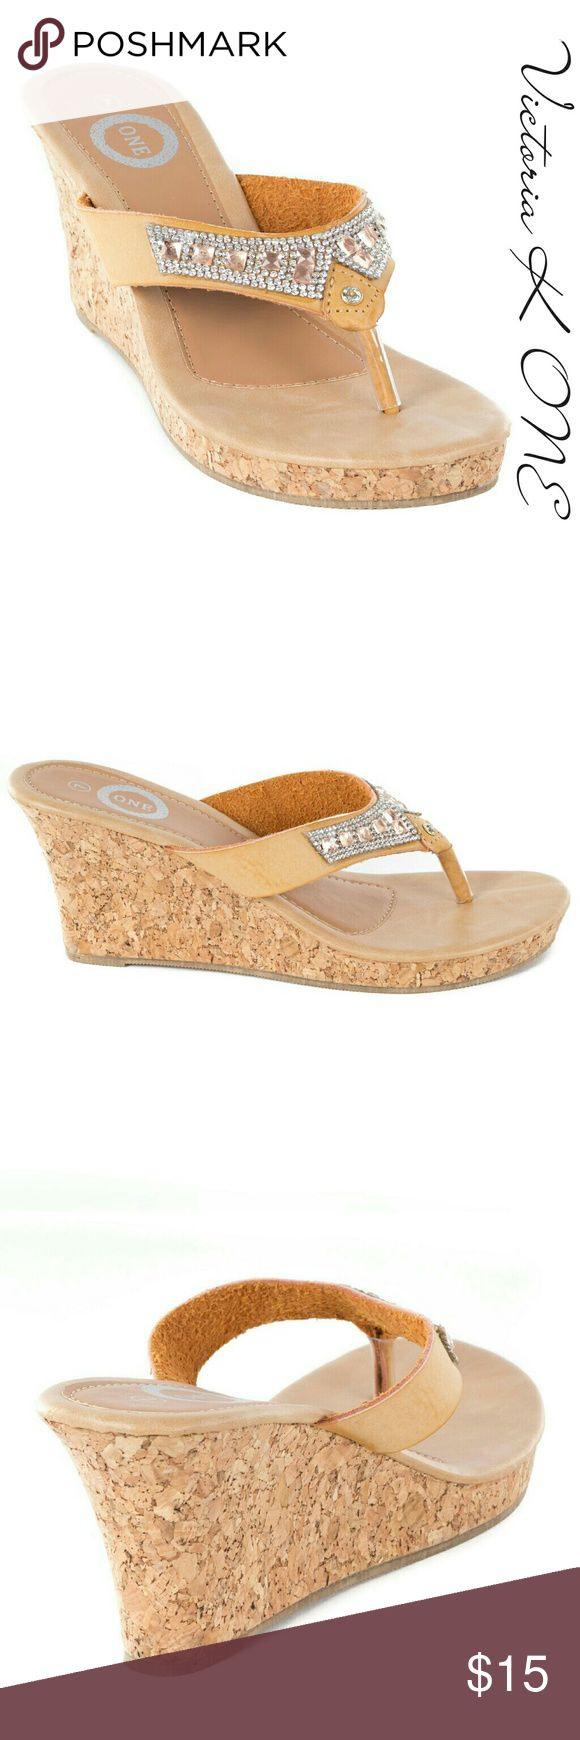 """Tory K Women Wedge Thong Sandals, HW-2082, Khaki From the ONE collection by Tory Klein, a beautiful sparkle - studded high platform thong woman sandal. Padded sole, platform measures 4"""", true to size. New in box. A true statement in ladies shoe fashion! Victoria K  Shoes Sandals"""